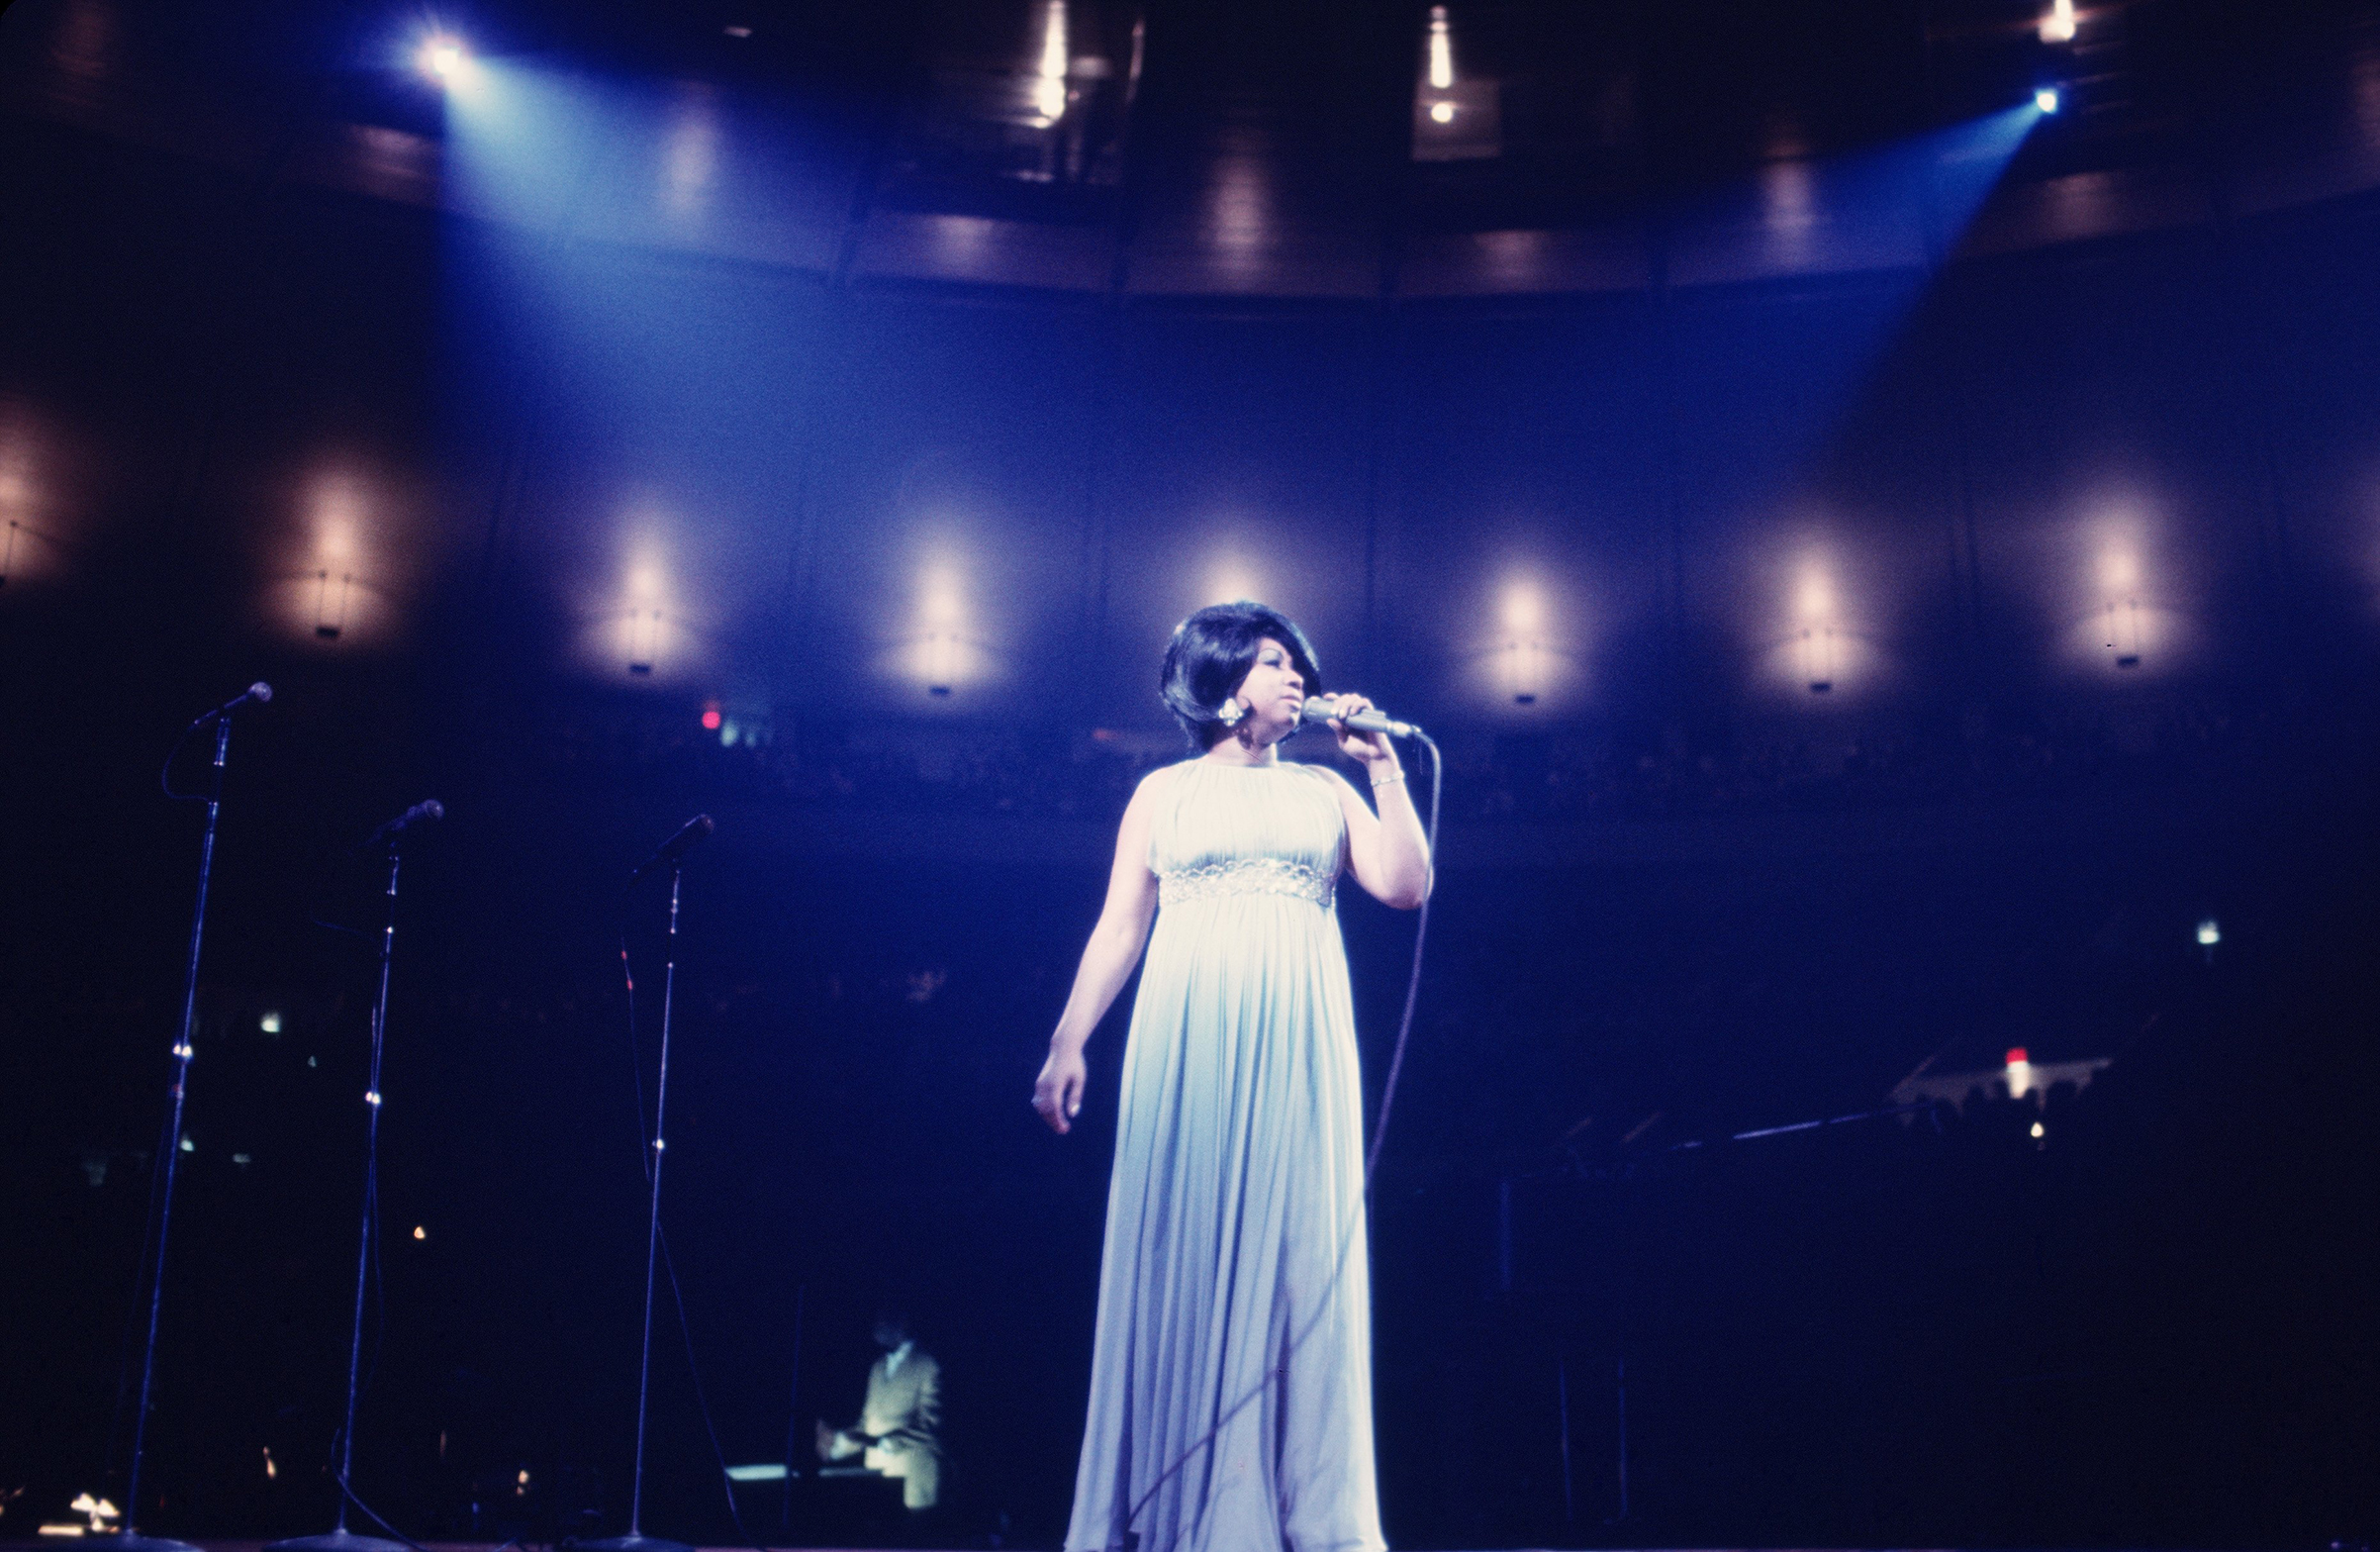 Singer Aretha Franklin performs during a concert at Madison Square Garden on June 28, 1968 in New York City, New York. (Photo by Walter Iooss Jr./Getty Images)